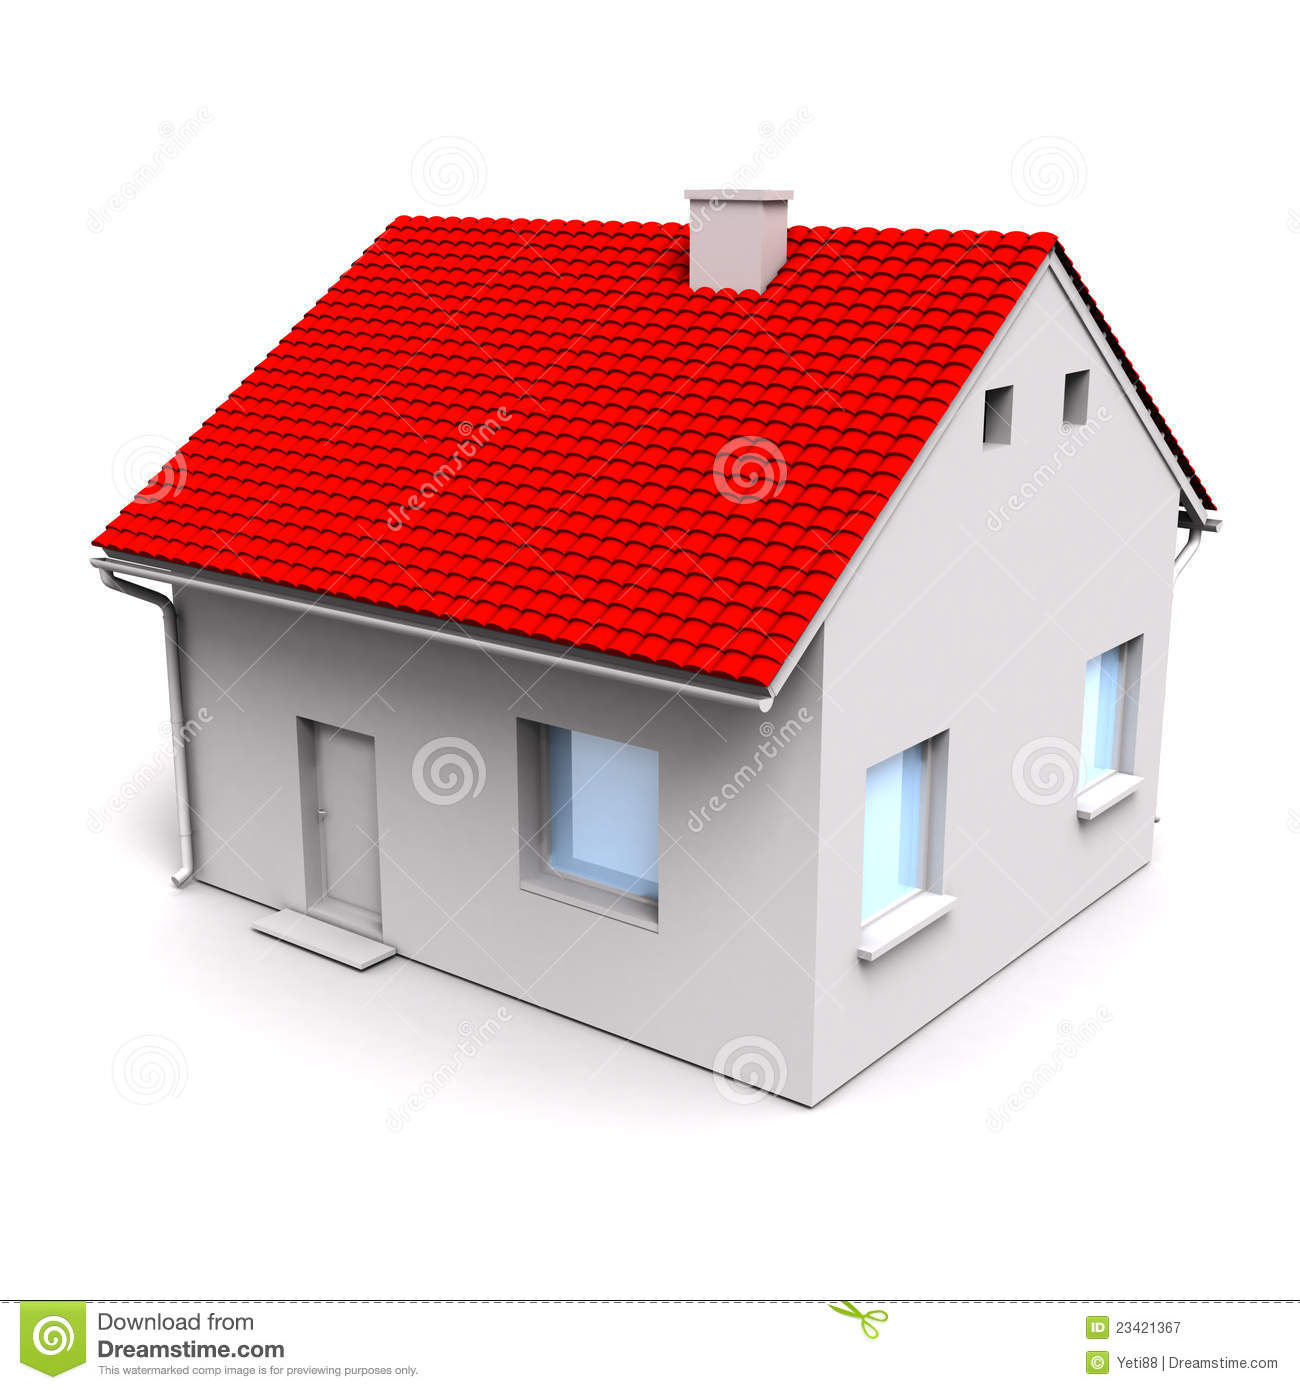 3d House Royalty Free Stock Photography Image 23421367